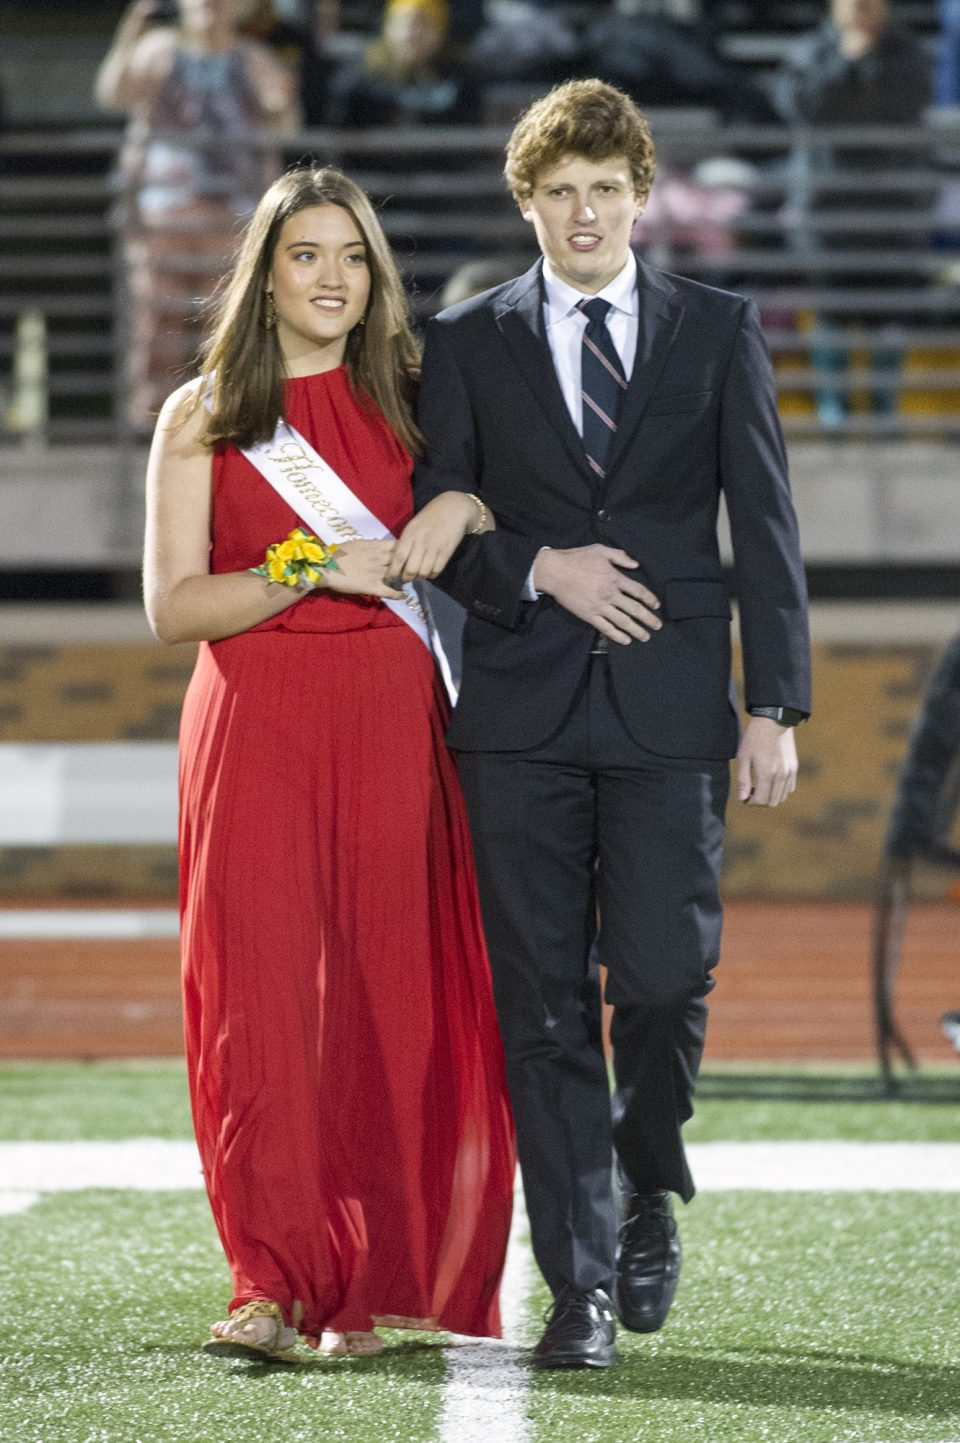 Homecoming queen candidate Allie Pigg and escort Drew Thomas. Photo by Maya Bell.